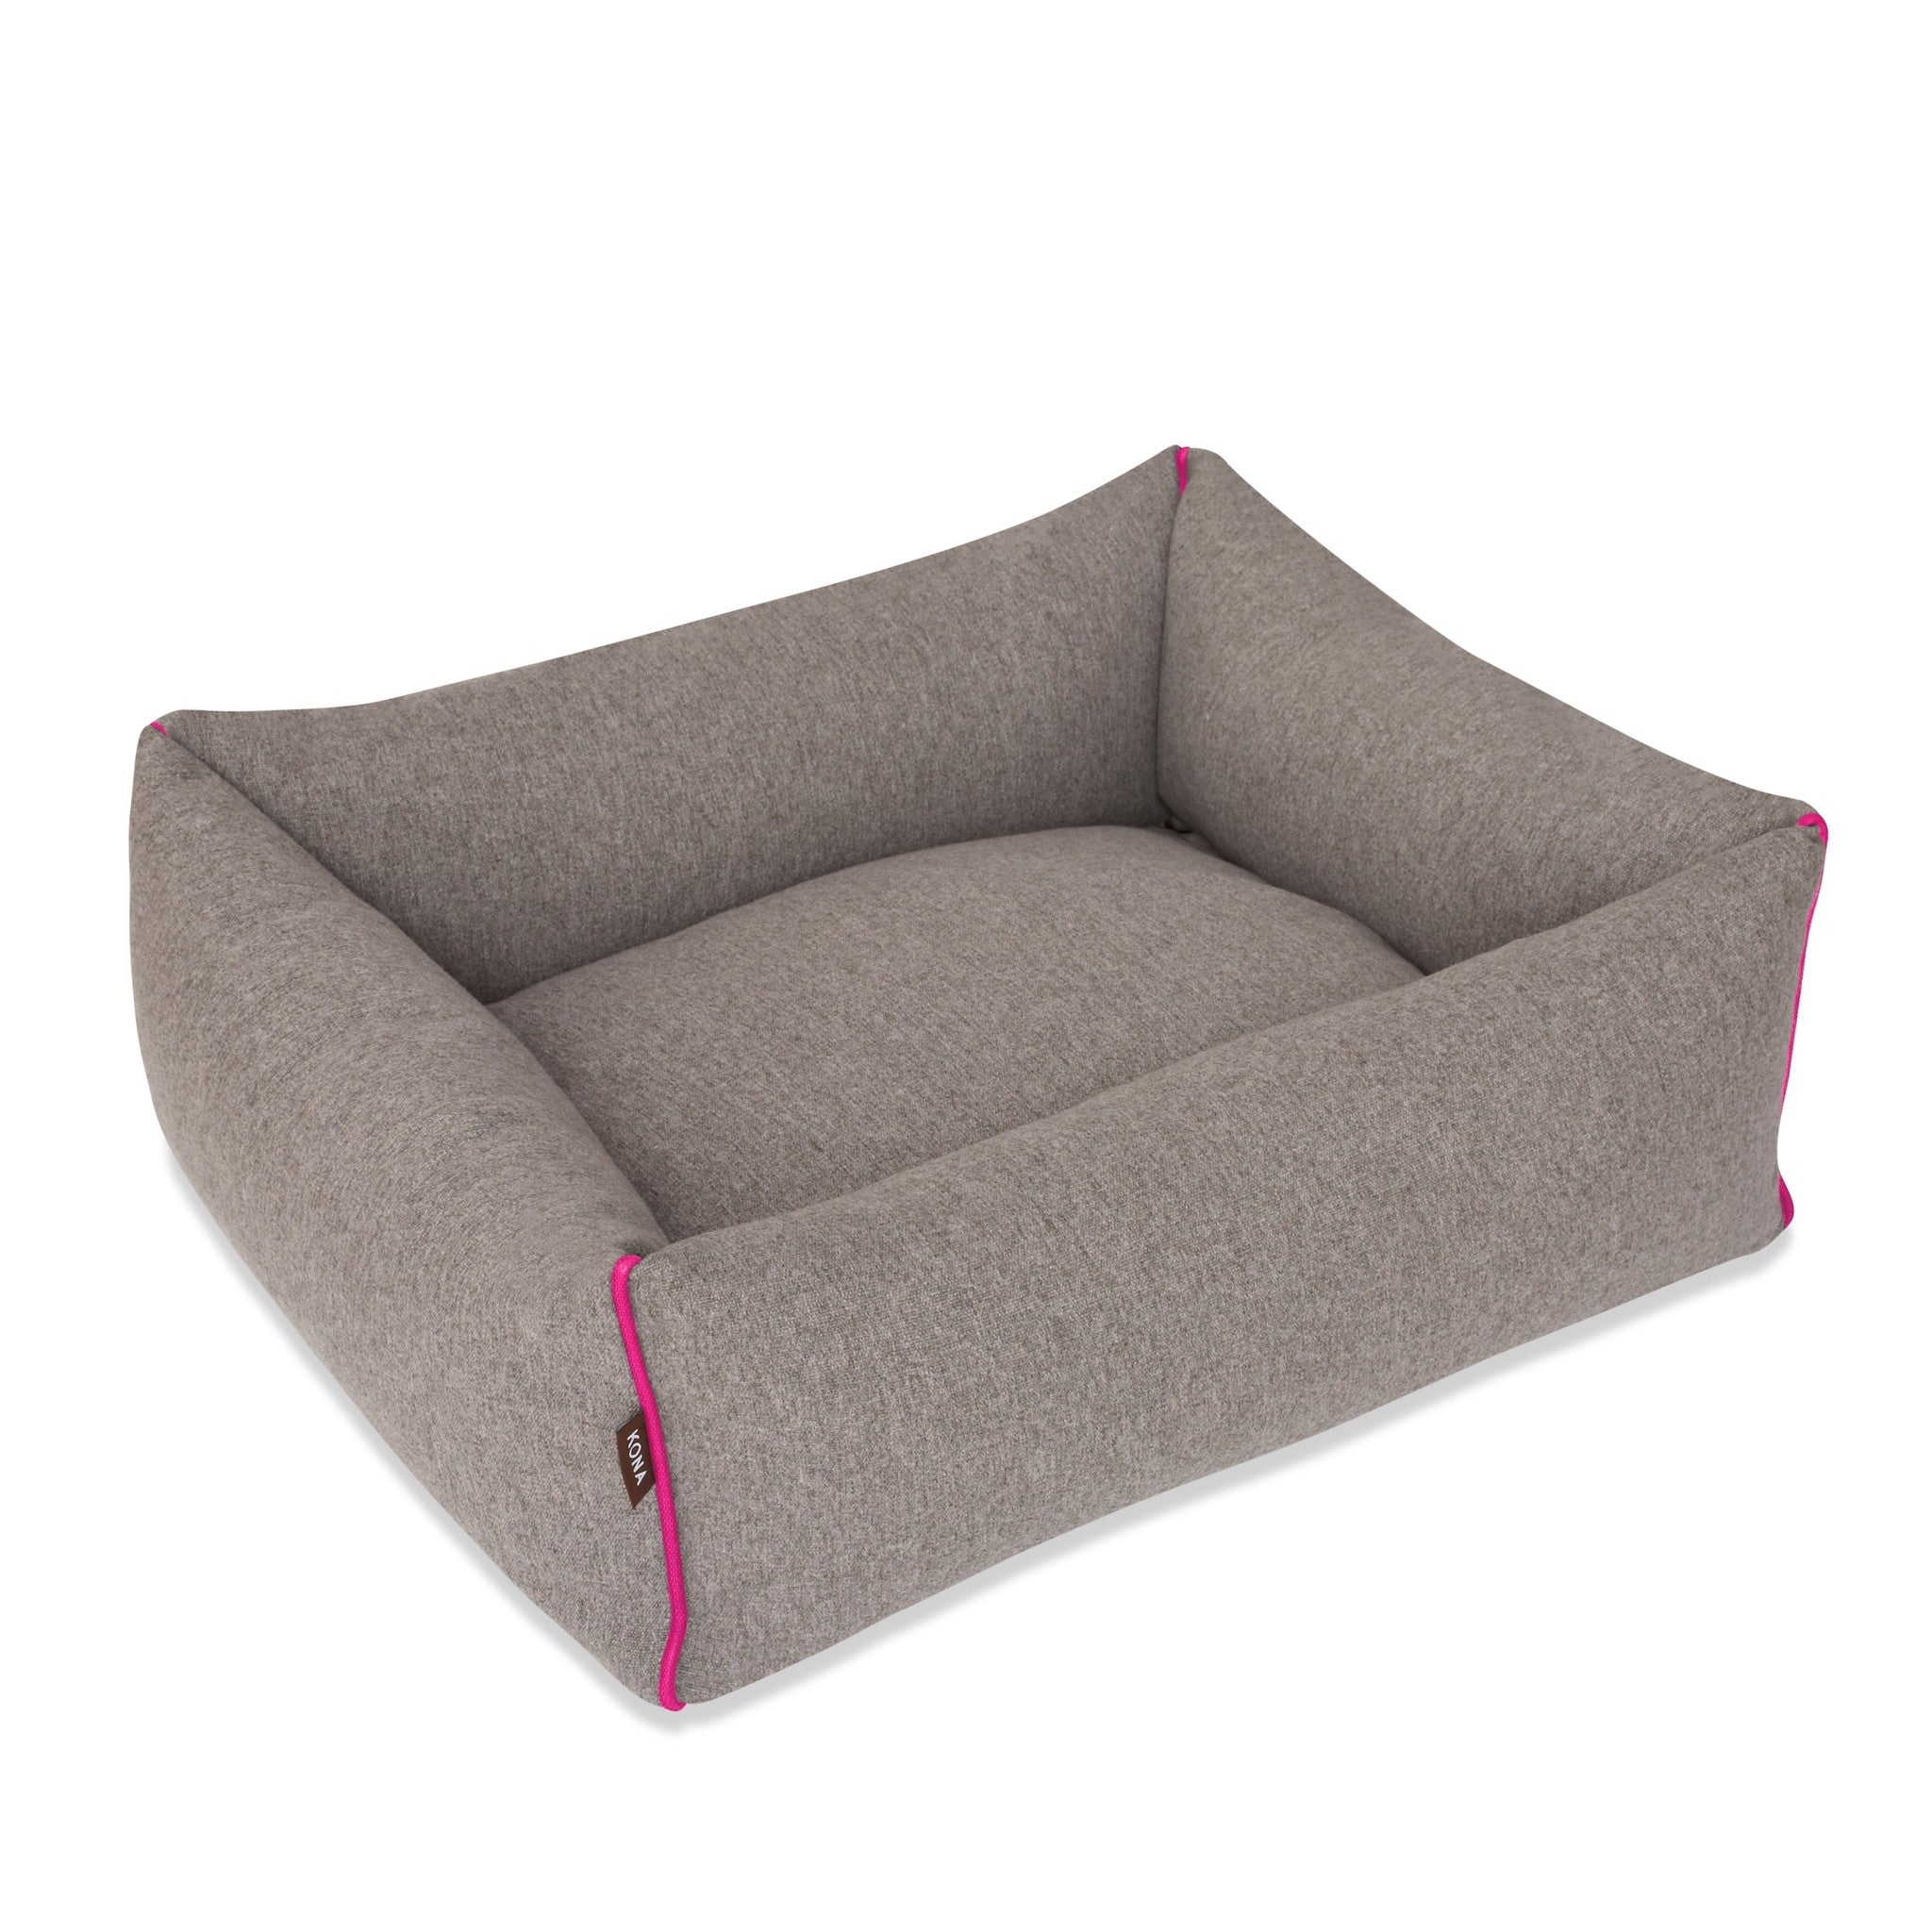 KONA CAVE Luxury Dog Beds Washable Grey Flannel with Hot Pink Trim